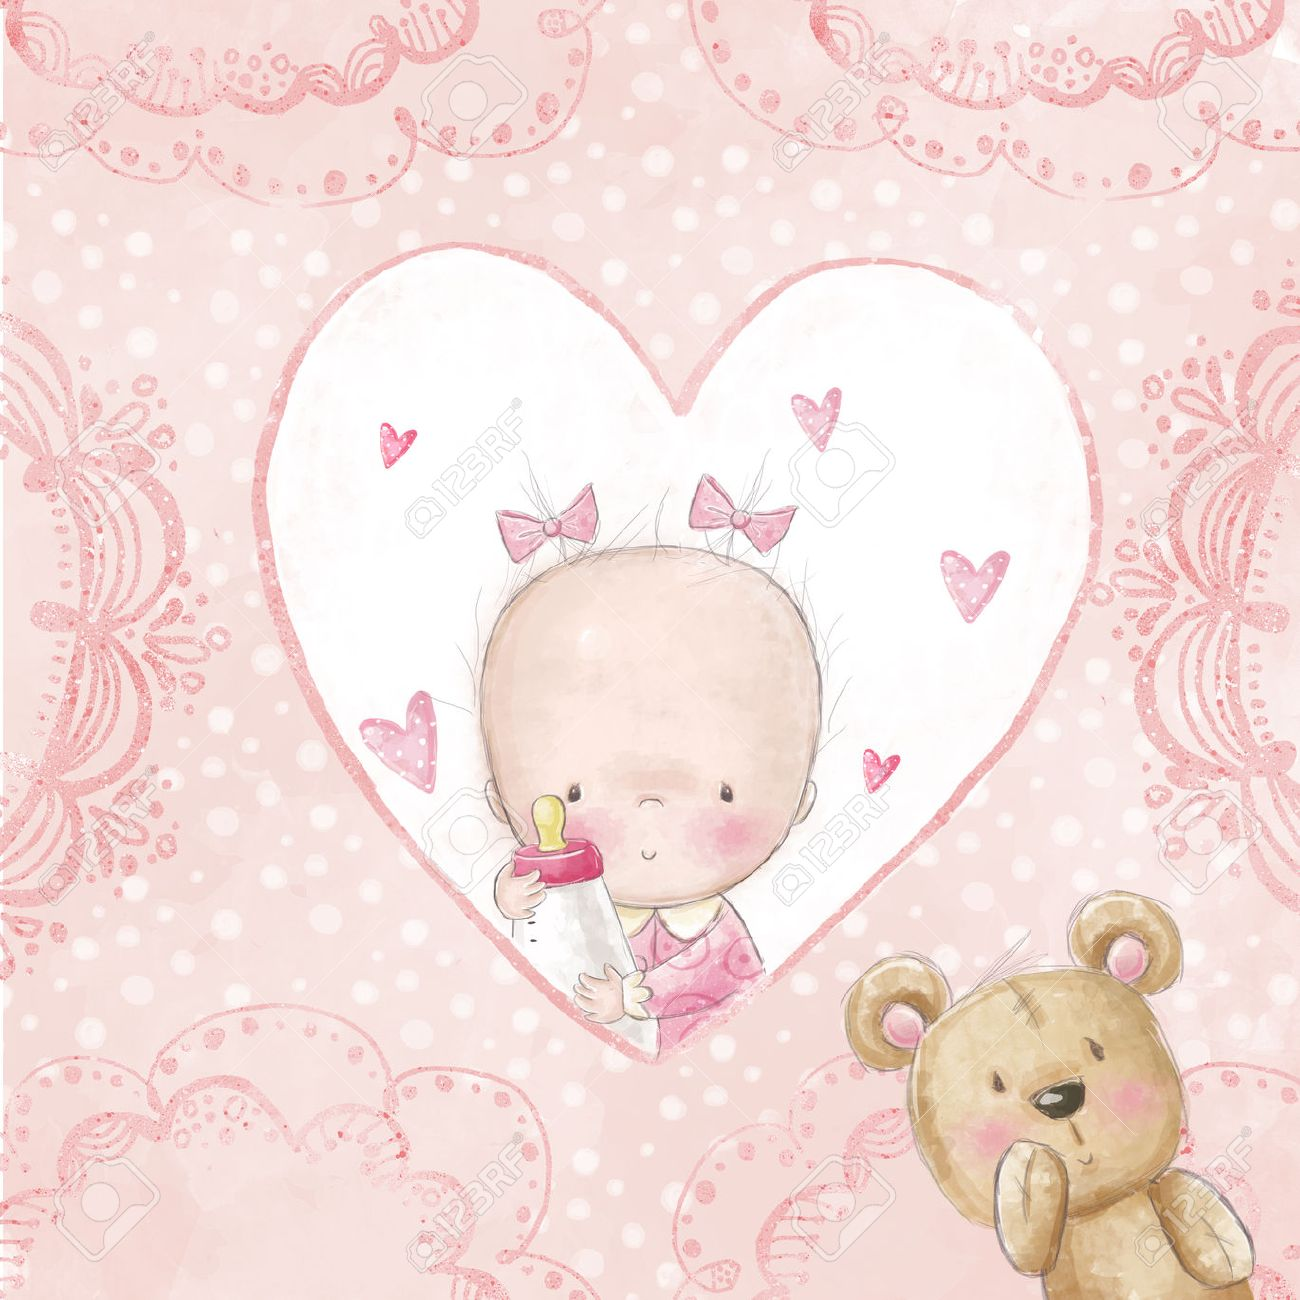 Full Size of Baby Shower:stylish Baby Shower Wishes Picture Inspirations Baby Shower Wishes Baby Shower Greeting Cardbaby With Teddylove Background Baby Shower Greeting Cardbaby With Teddylove Background For Childrenbaptism